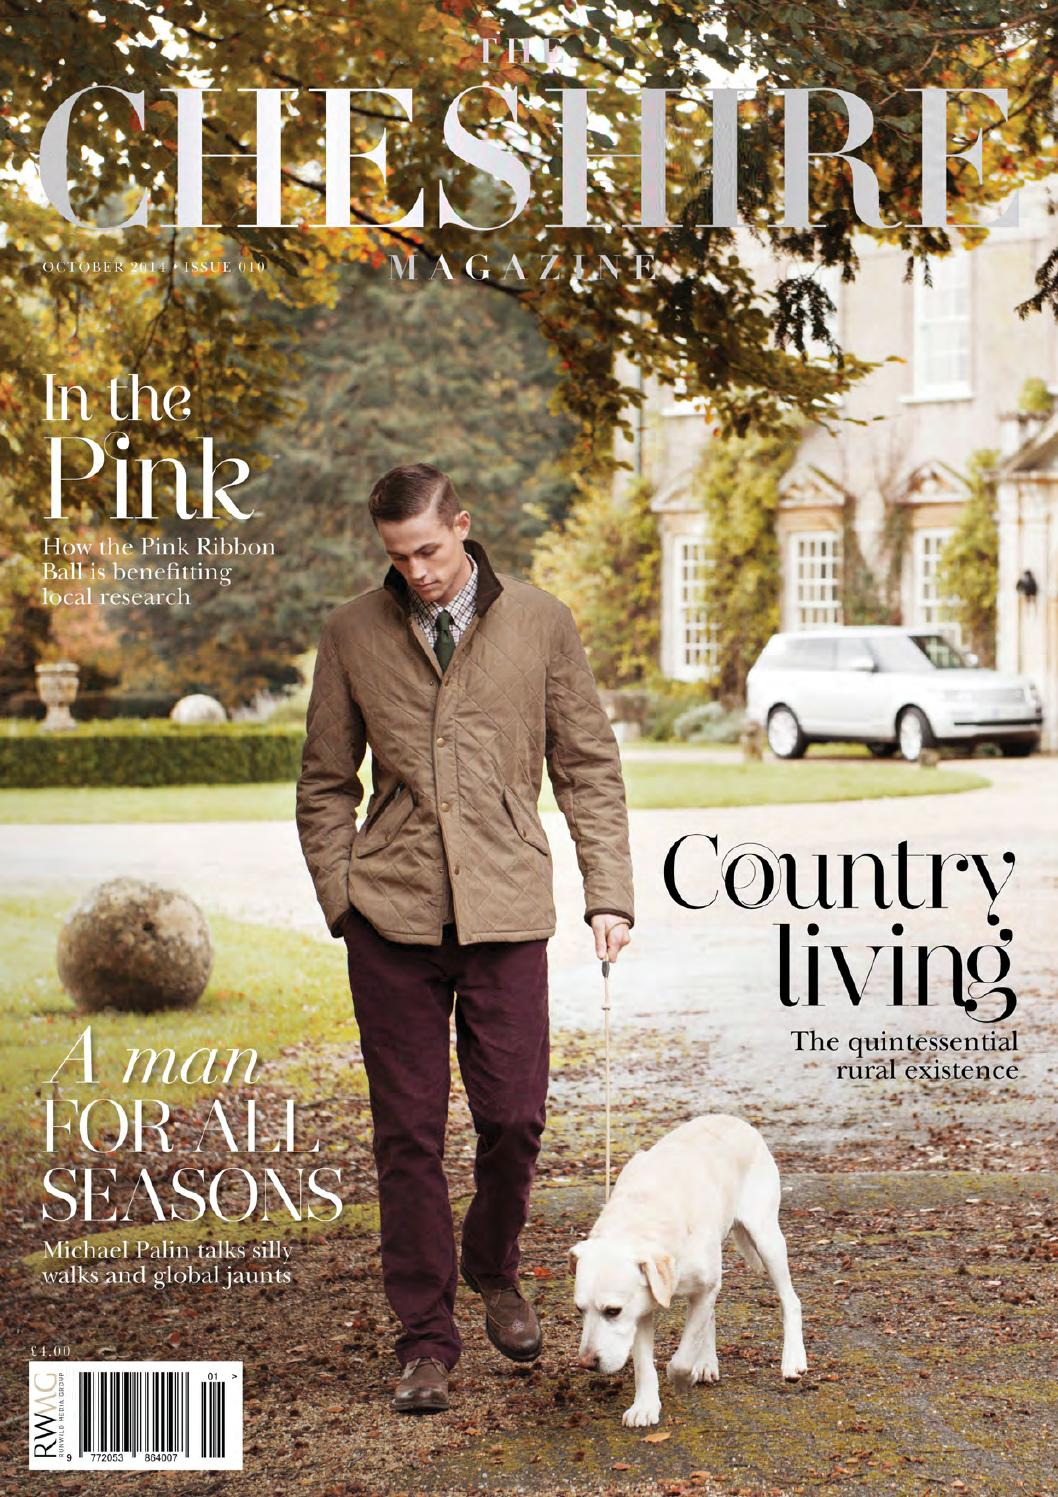 The Cheshire Magazine October 2014 by